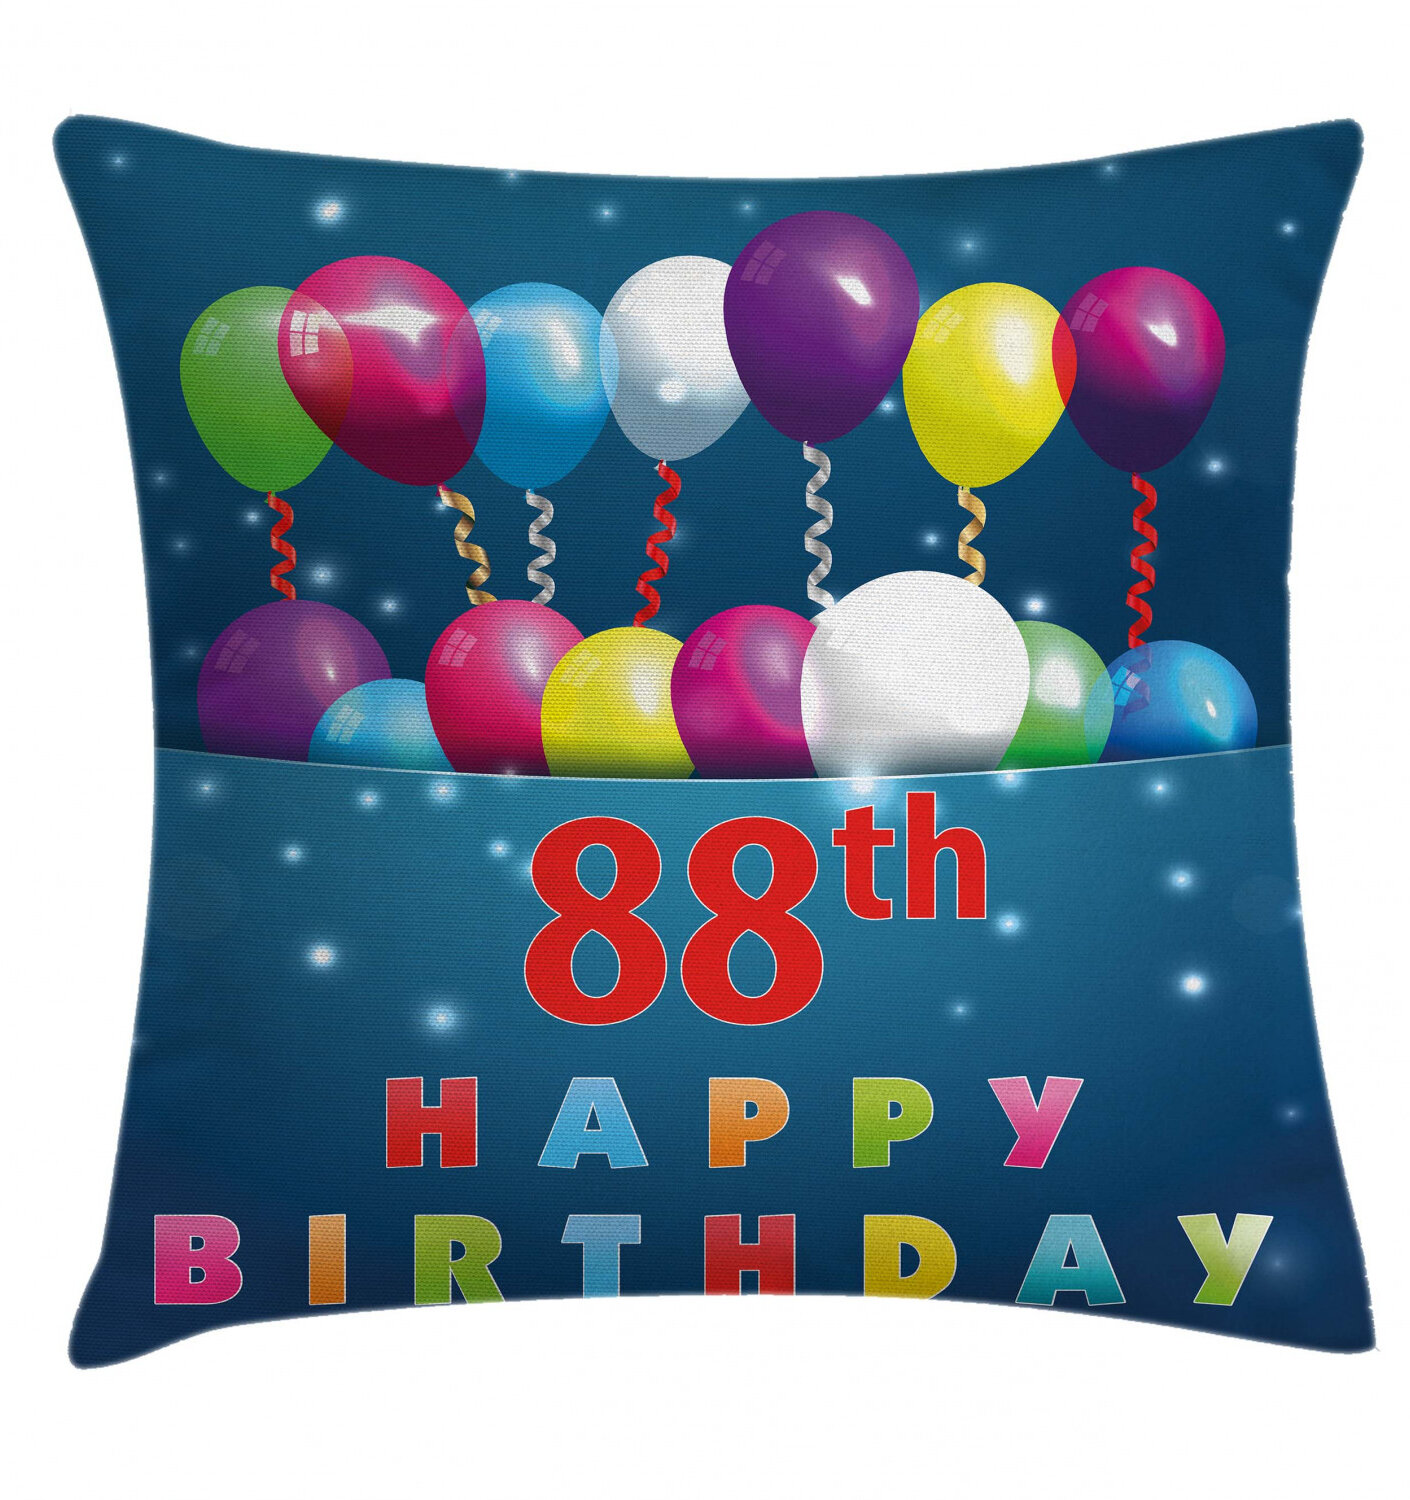 East Urban Home 88th Birthday Indoor Outdoor 40 Throw Pillow Cover Wayfair